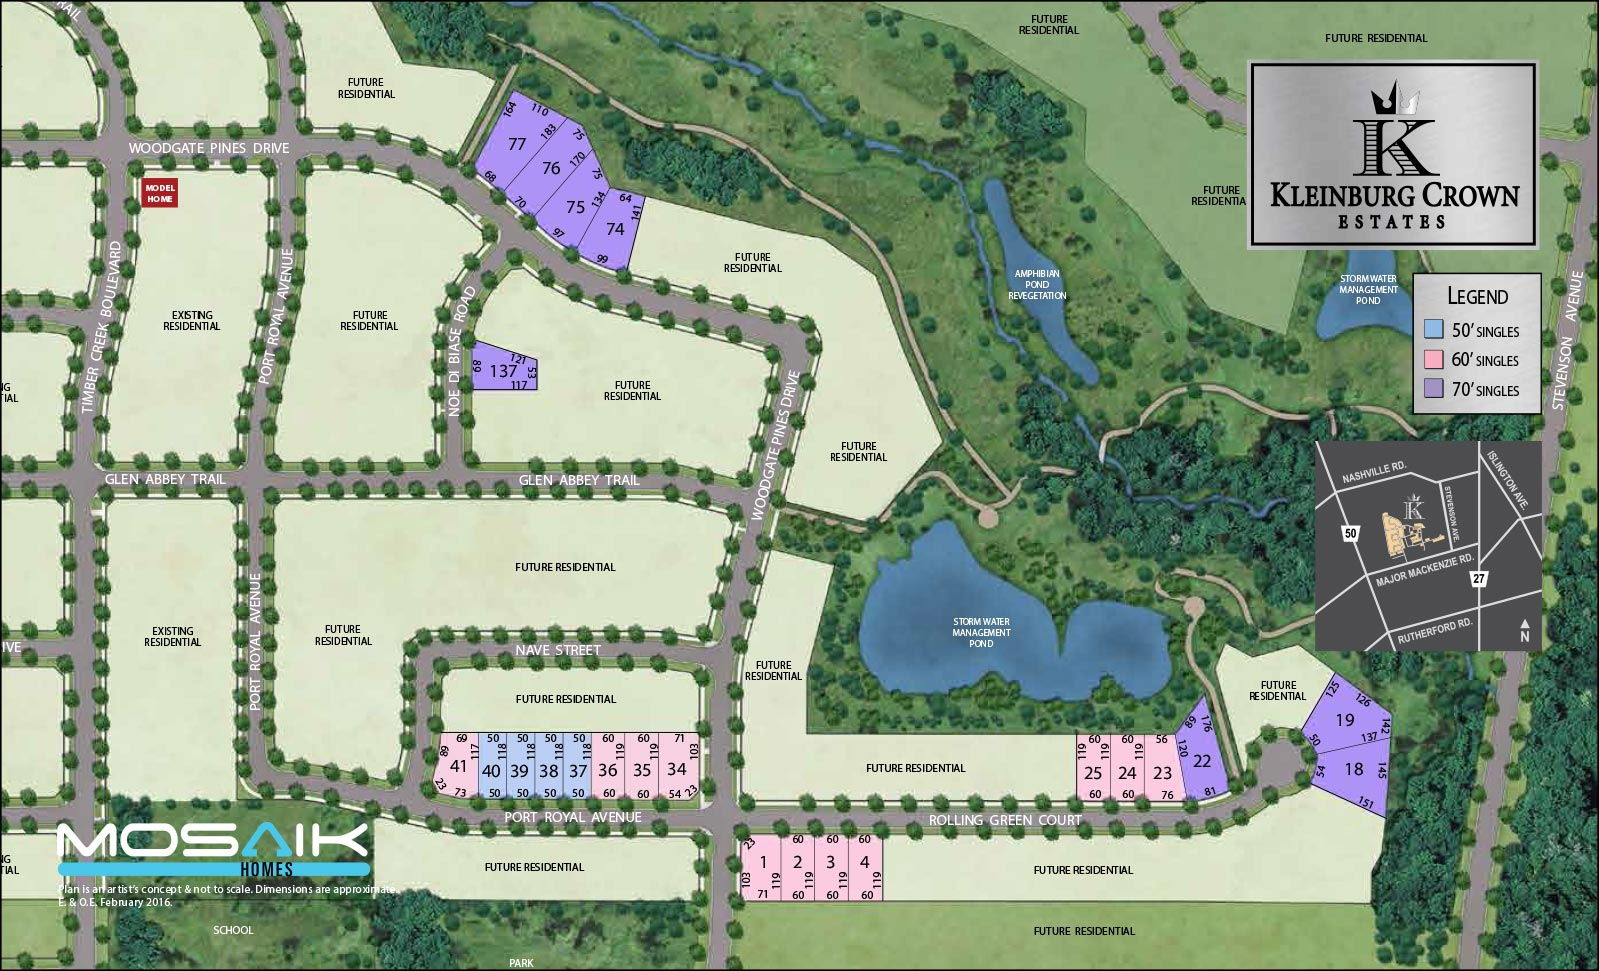 Site plan for Kleinburg Crown Estates in Kleinburg, Ontario